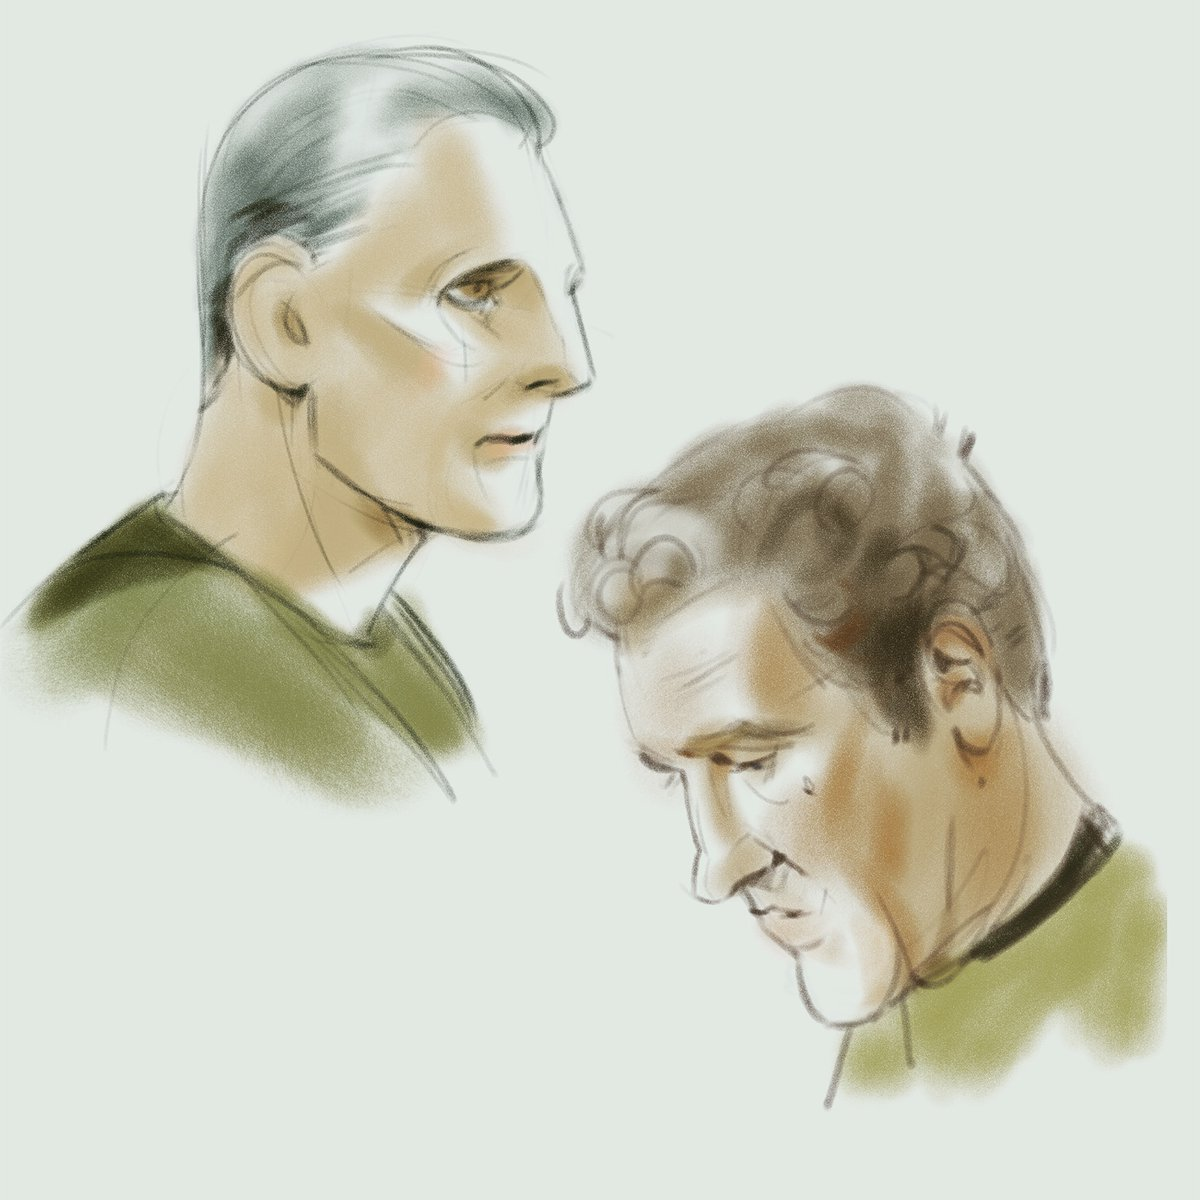 Started watching Star Trek DS9 for moral support